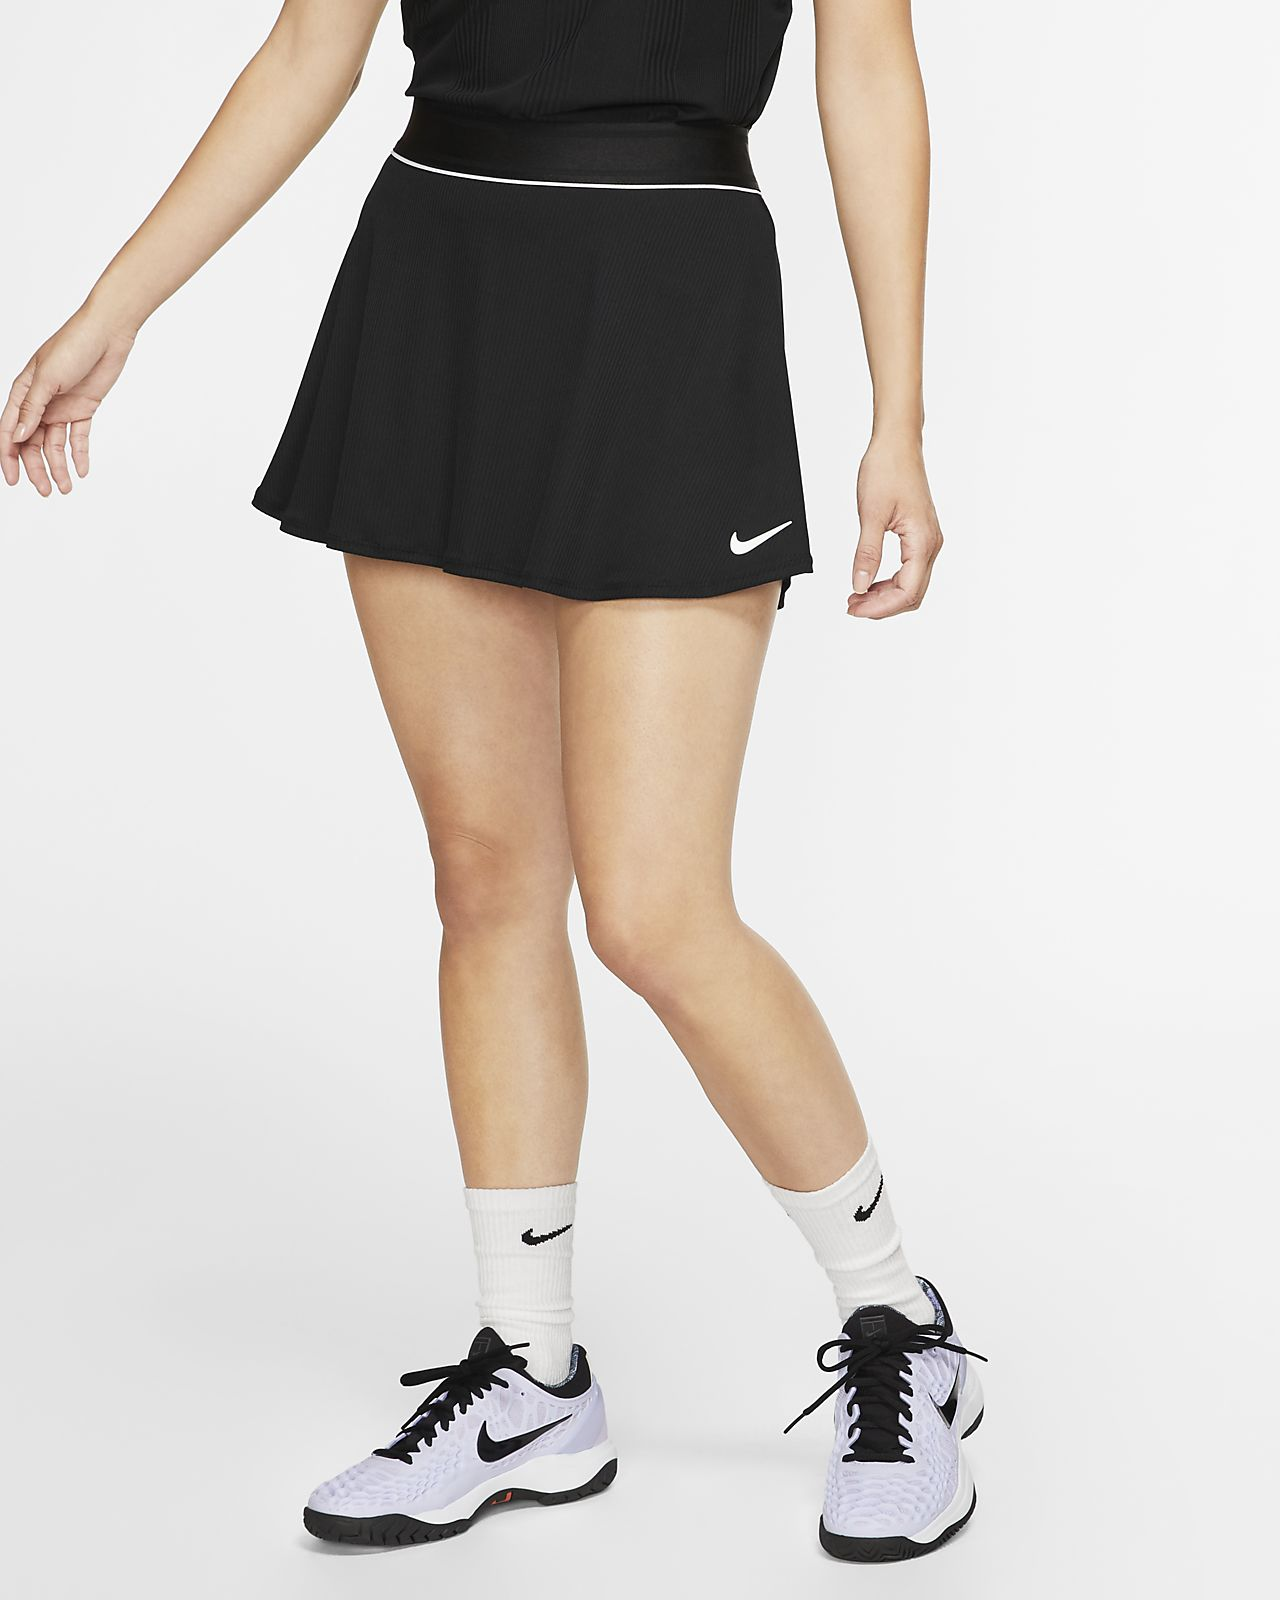 Nikecourt Dri-Fit Women's Tennis Skirt – Inner shorts provide extra coverage while you move.